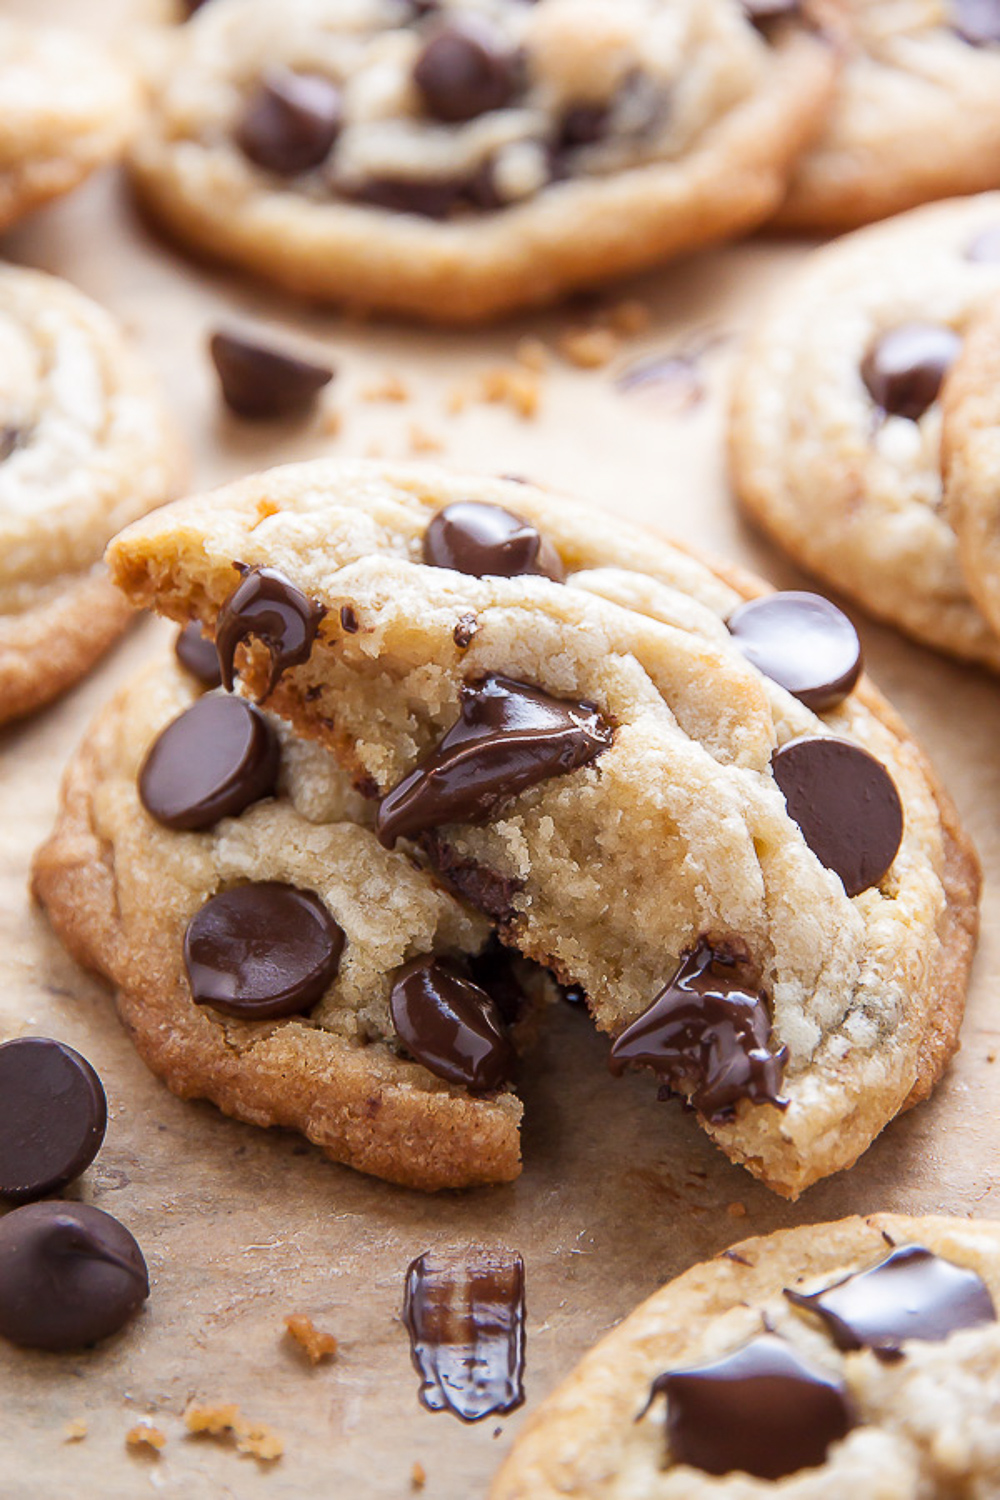 Craving chocolate chip cookies? Well, you're in the right place! Today I'm sharing 21 chocolate chip cookie recipes sure to cure ANY craving! Seriously! So whether you're looking for mini chocolate chip cookies, vegan chocolate chip cookies, or monster chocolate chip cookies loaded with m&ms and chewy oats, I've got you covered!